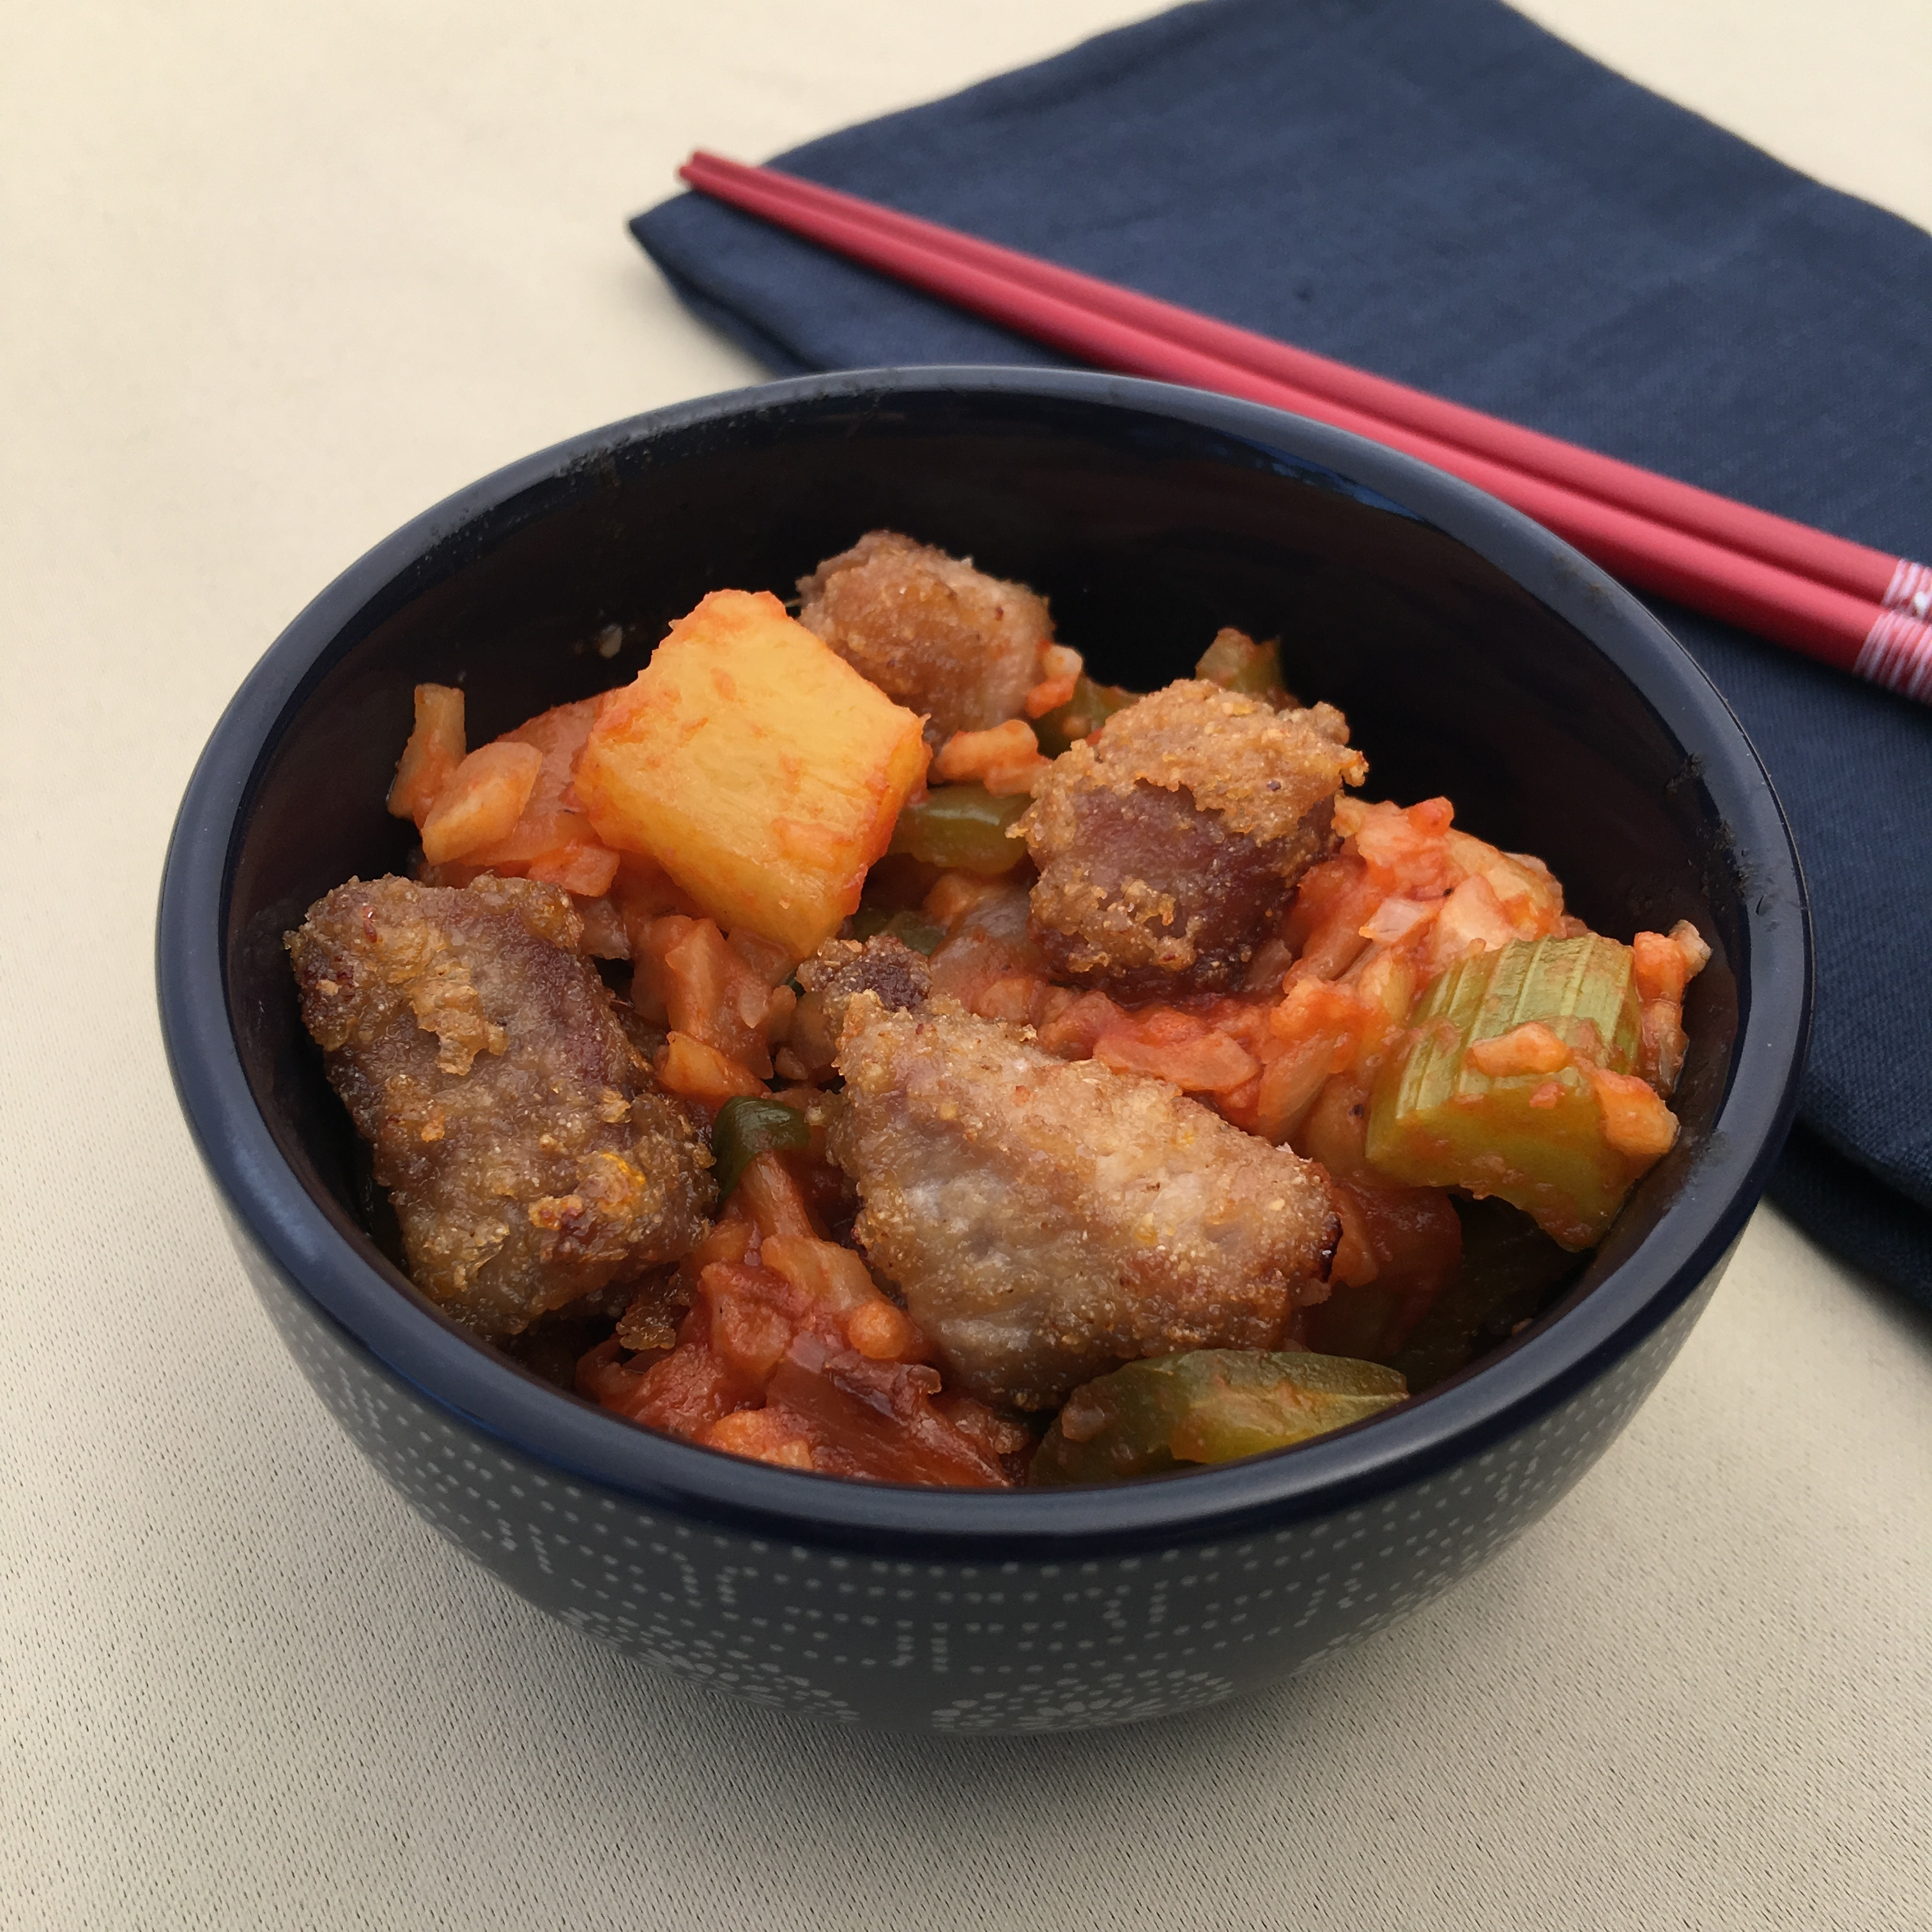 Grain Free Sweet & Sour Pork by The Allergy Chef